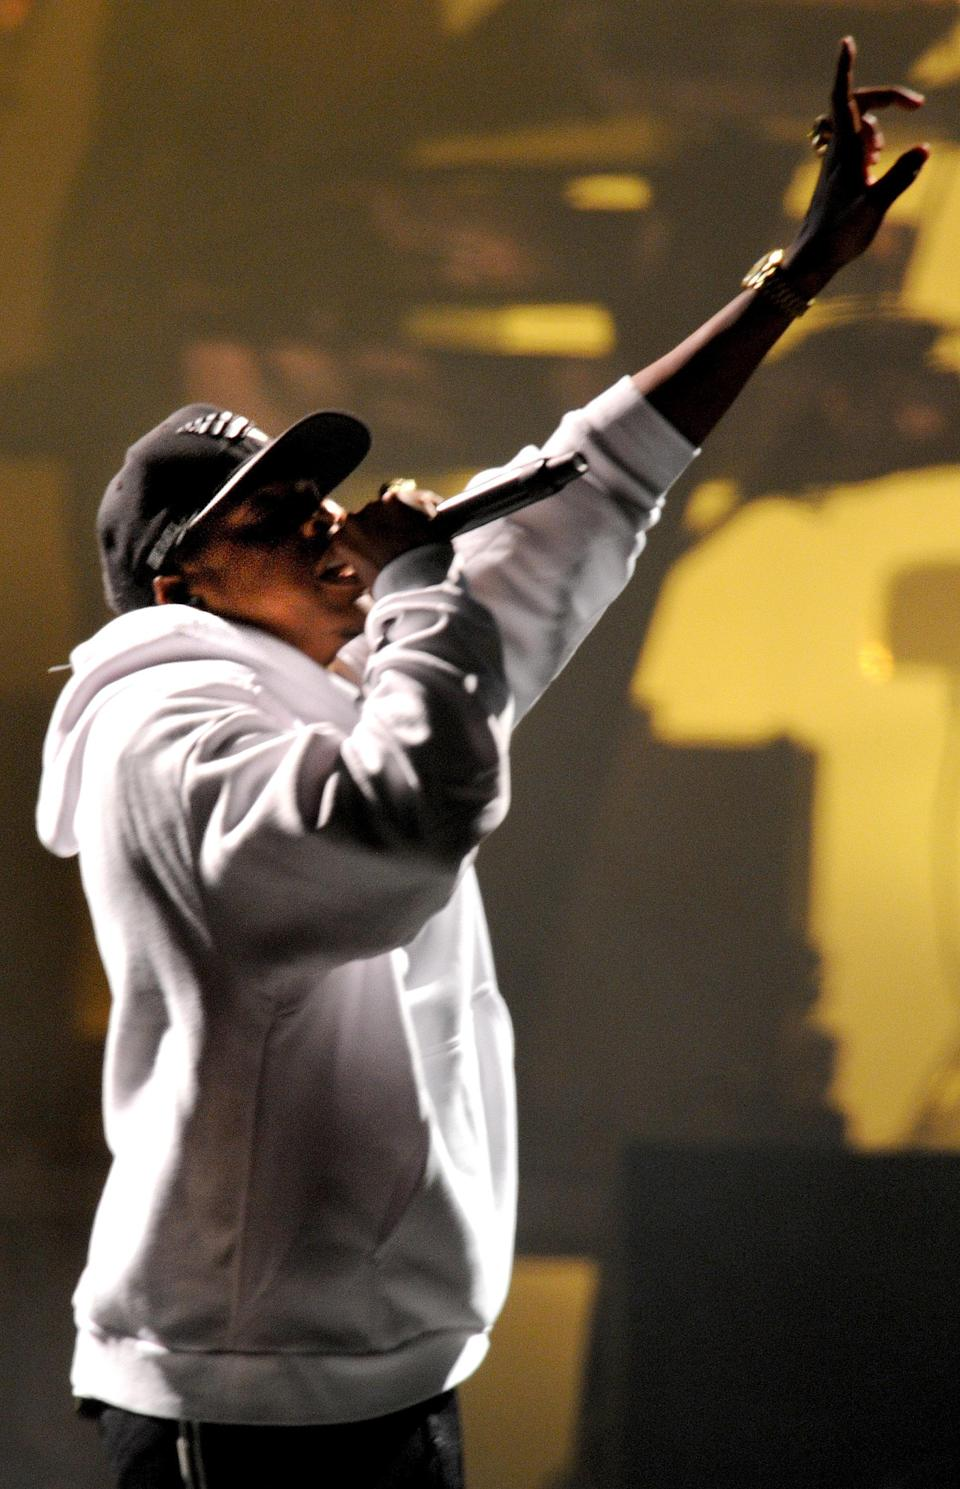 Jay-Z closed his set at V Festival over the weekend with a special performance, dedicated to the late Chester Bennington.